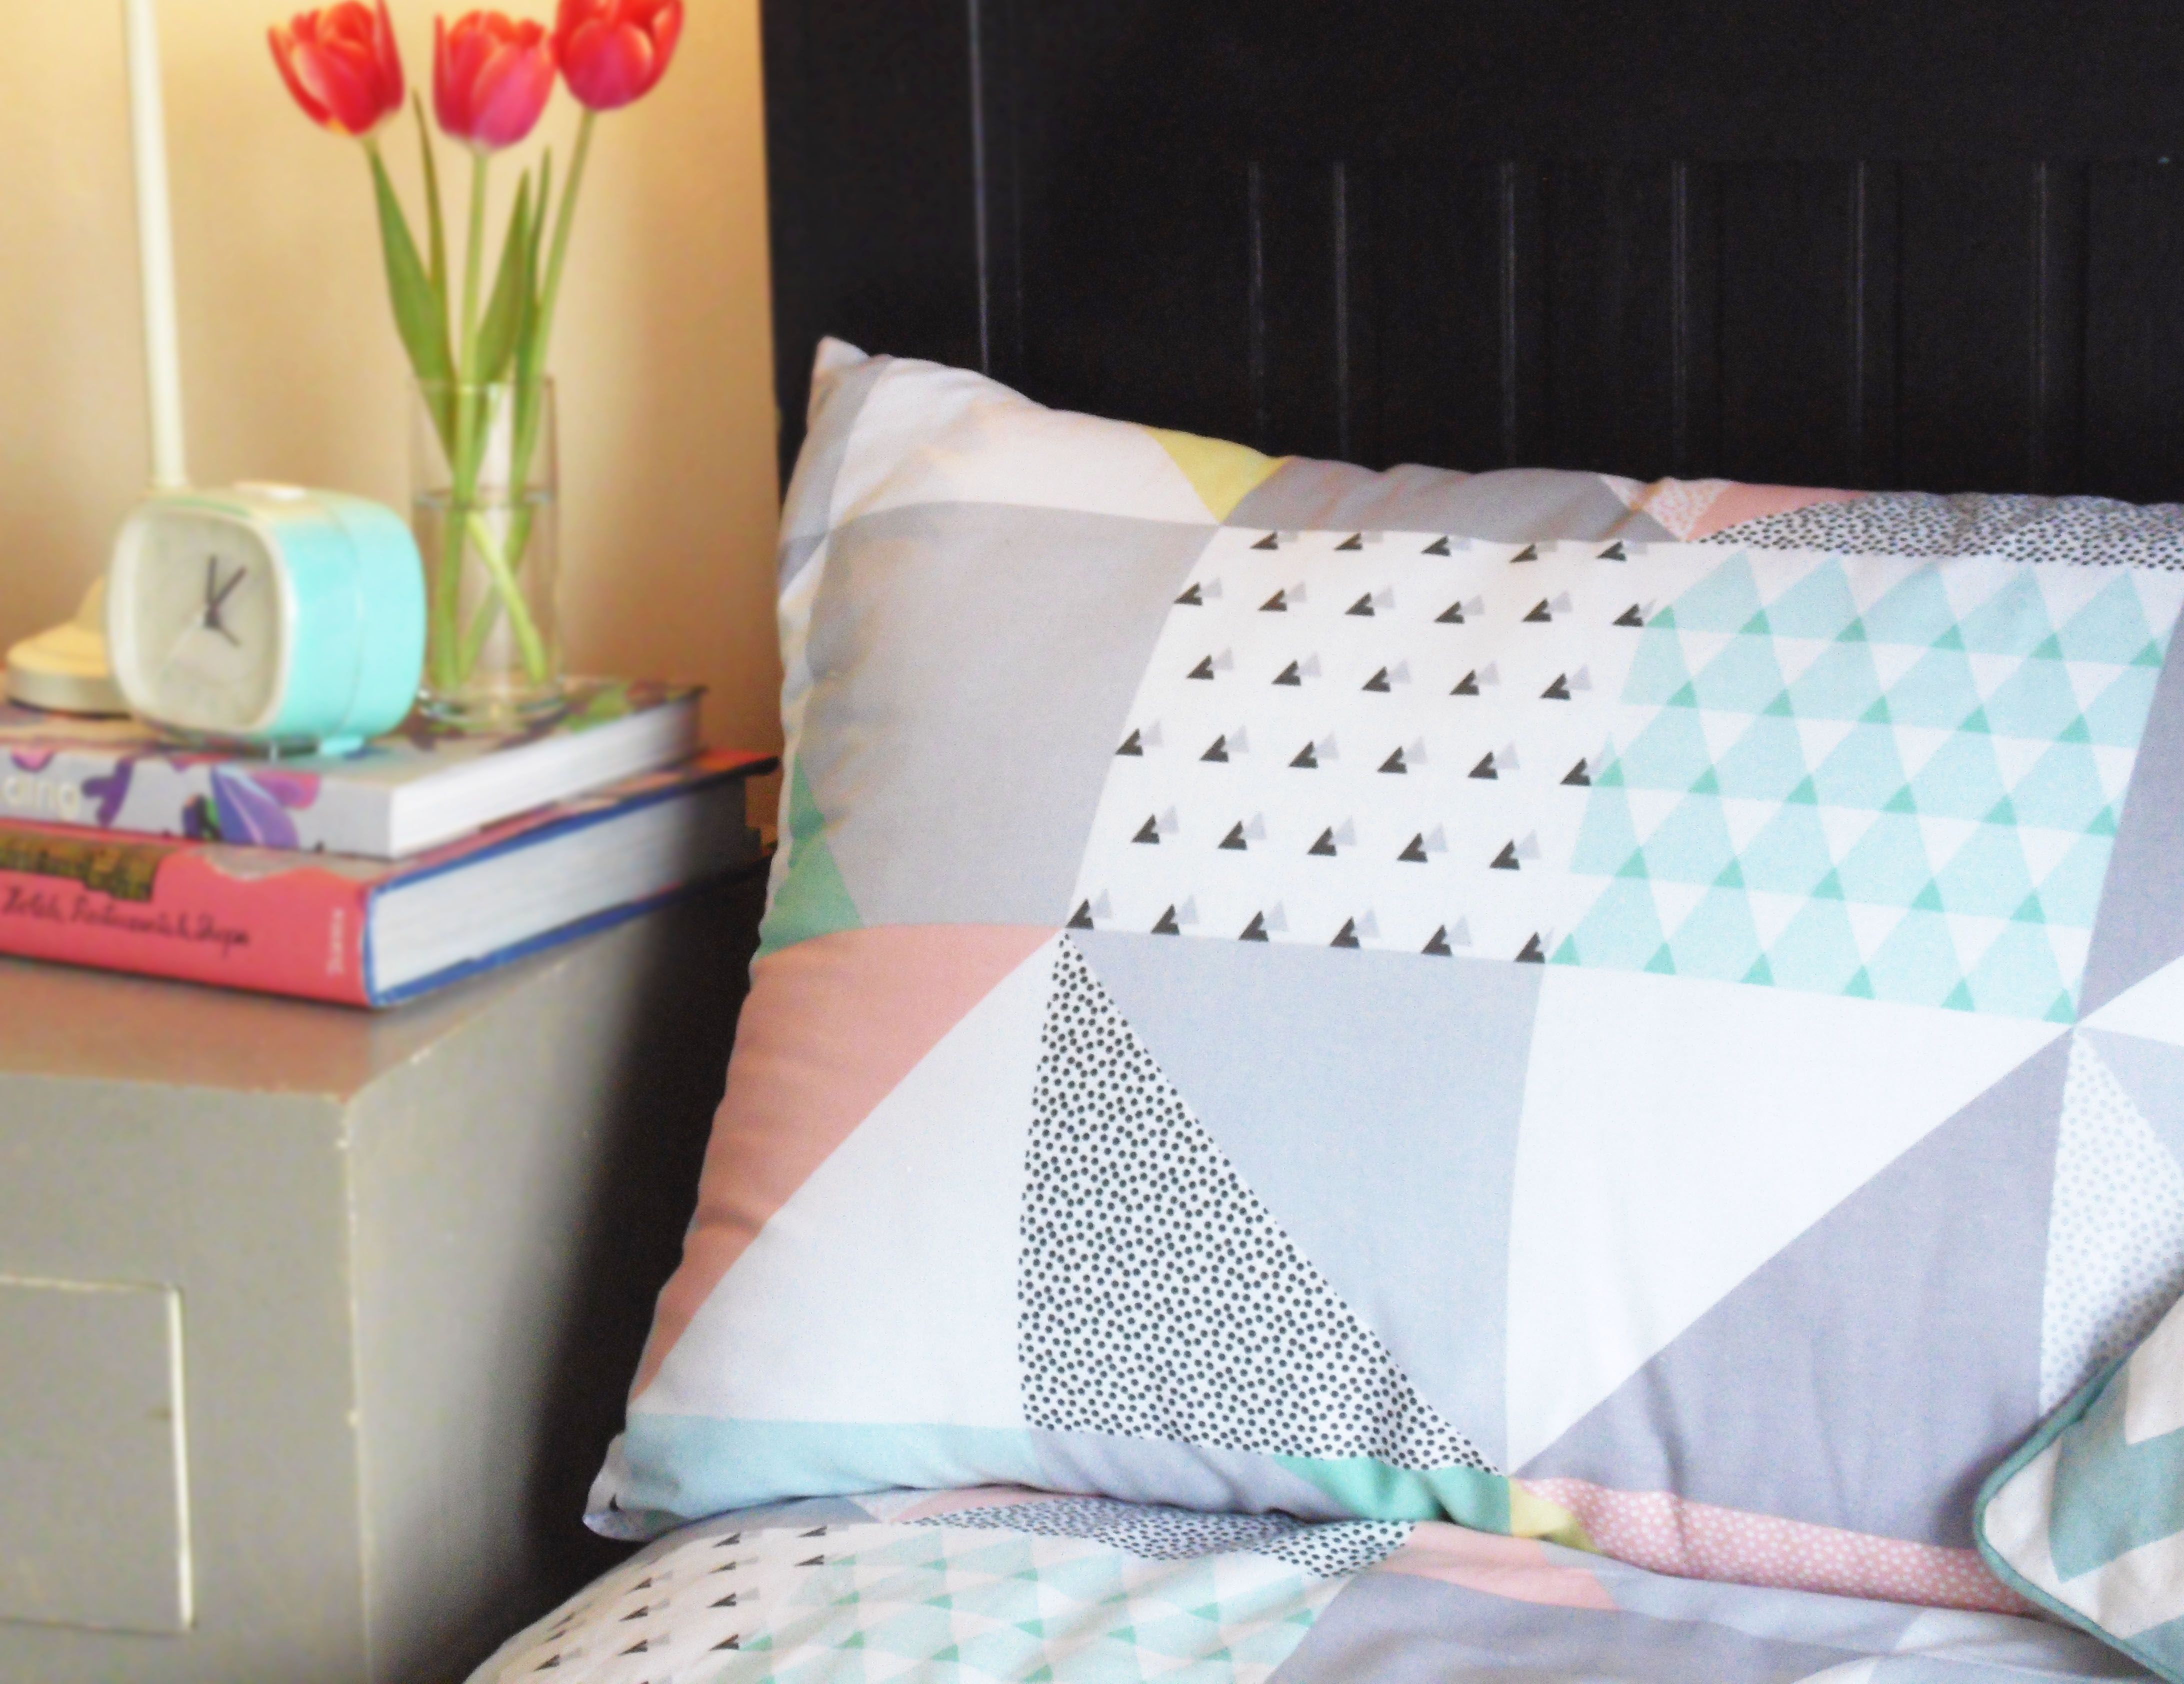 Primark Ss15 Homewares 80s Style Geometric Printed Bedware